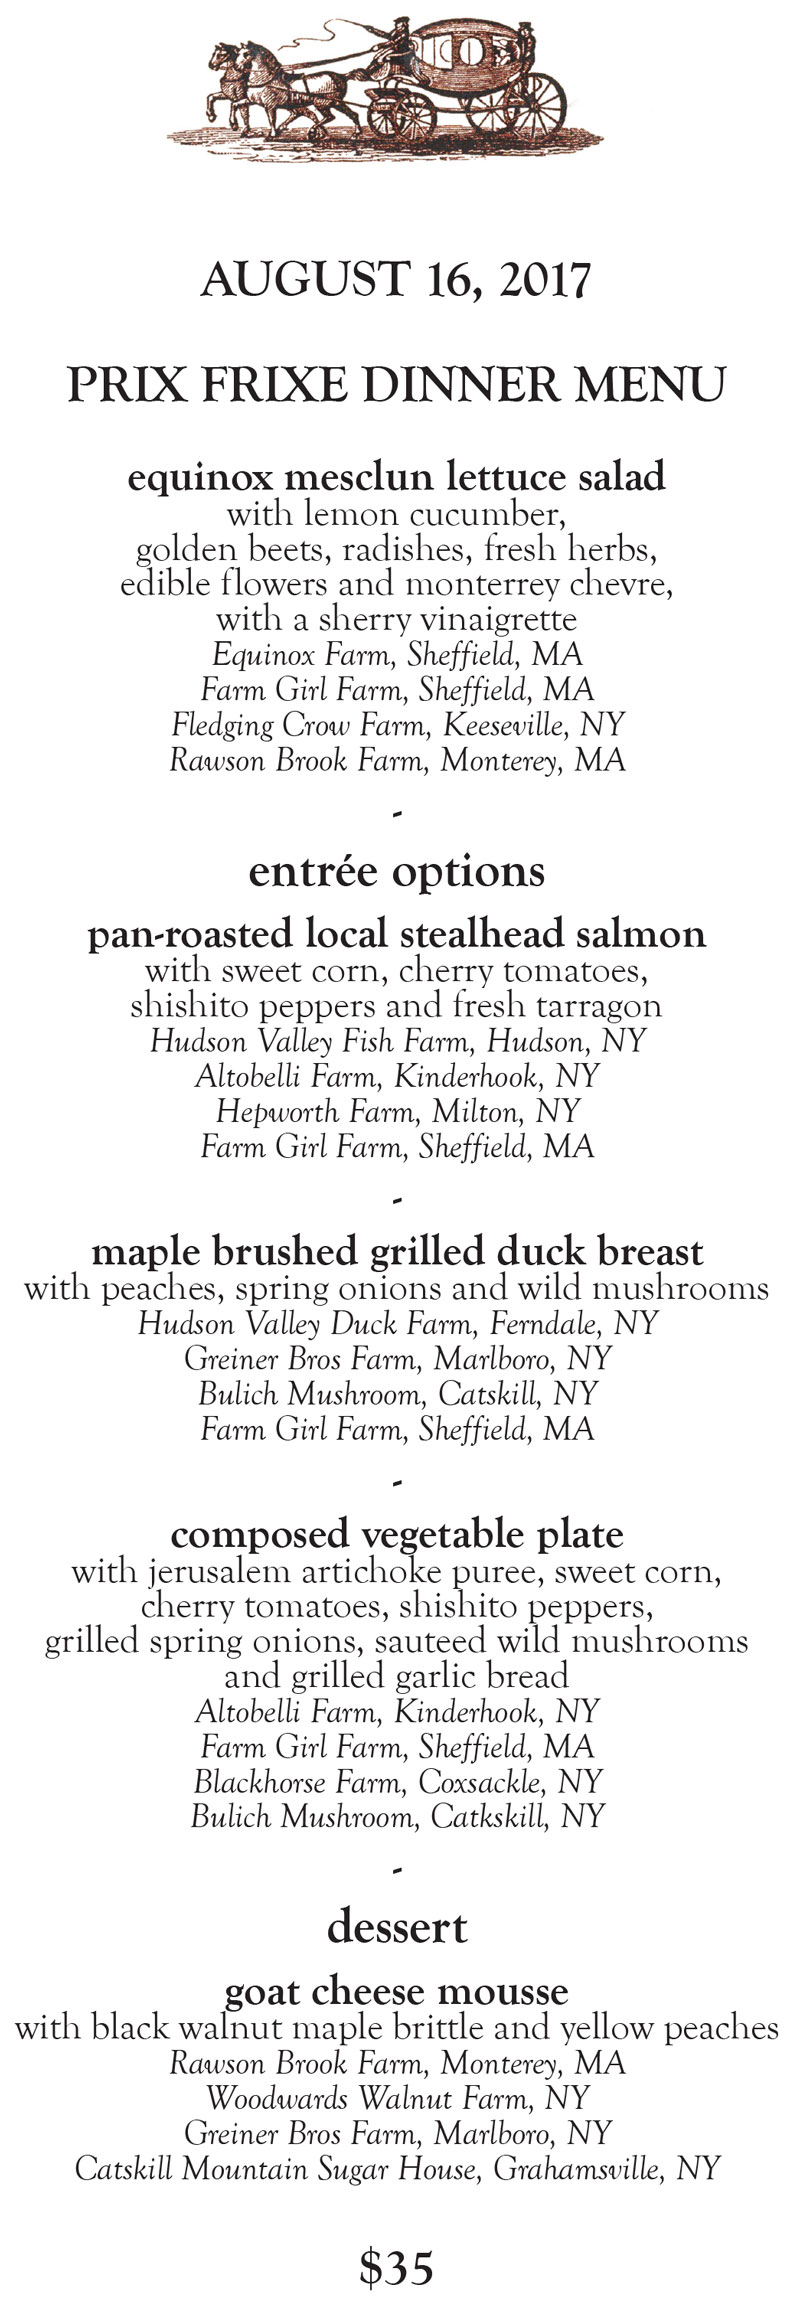 The Stagecoach Tavern Prix Frixe Dinner Menu Aug. 16, 2017 by Chef Laurel Barkan